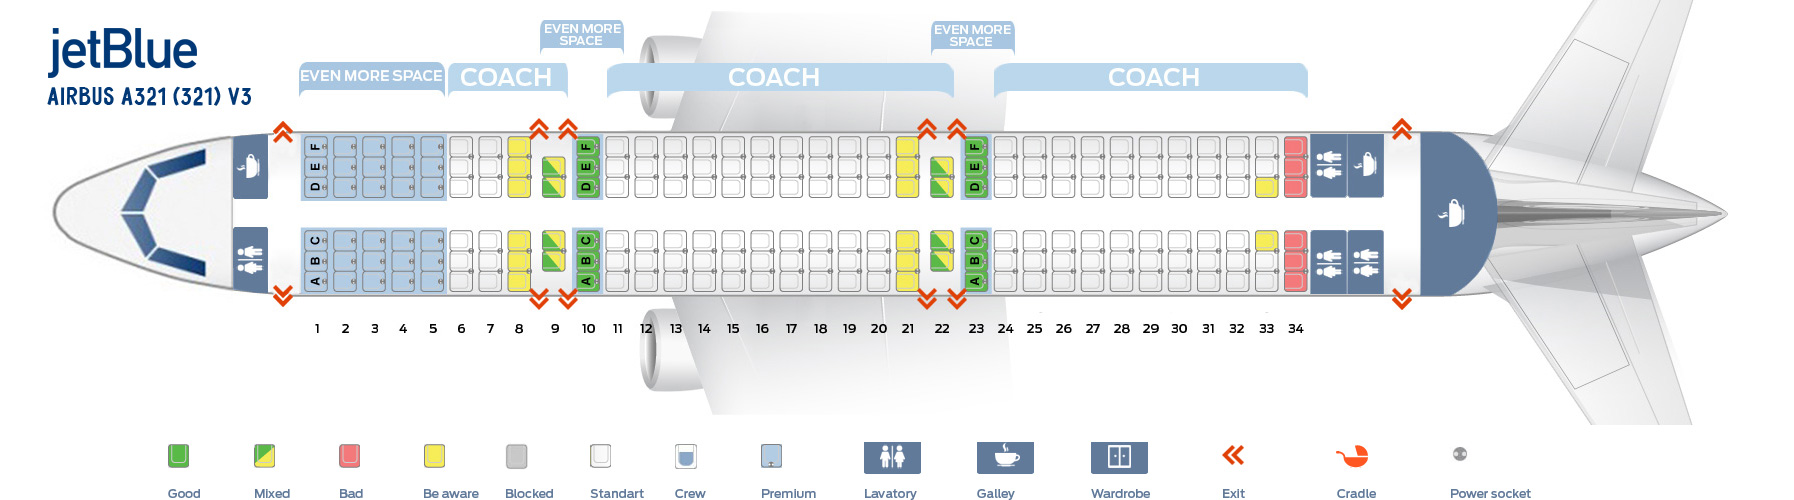 Seat Map Airbus A321-200 V3 JetBlue